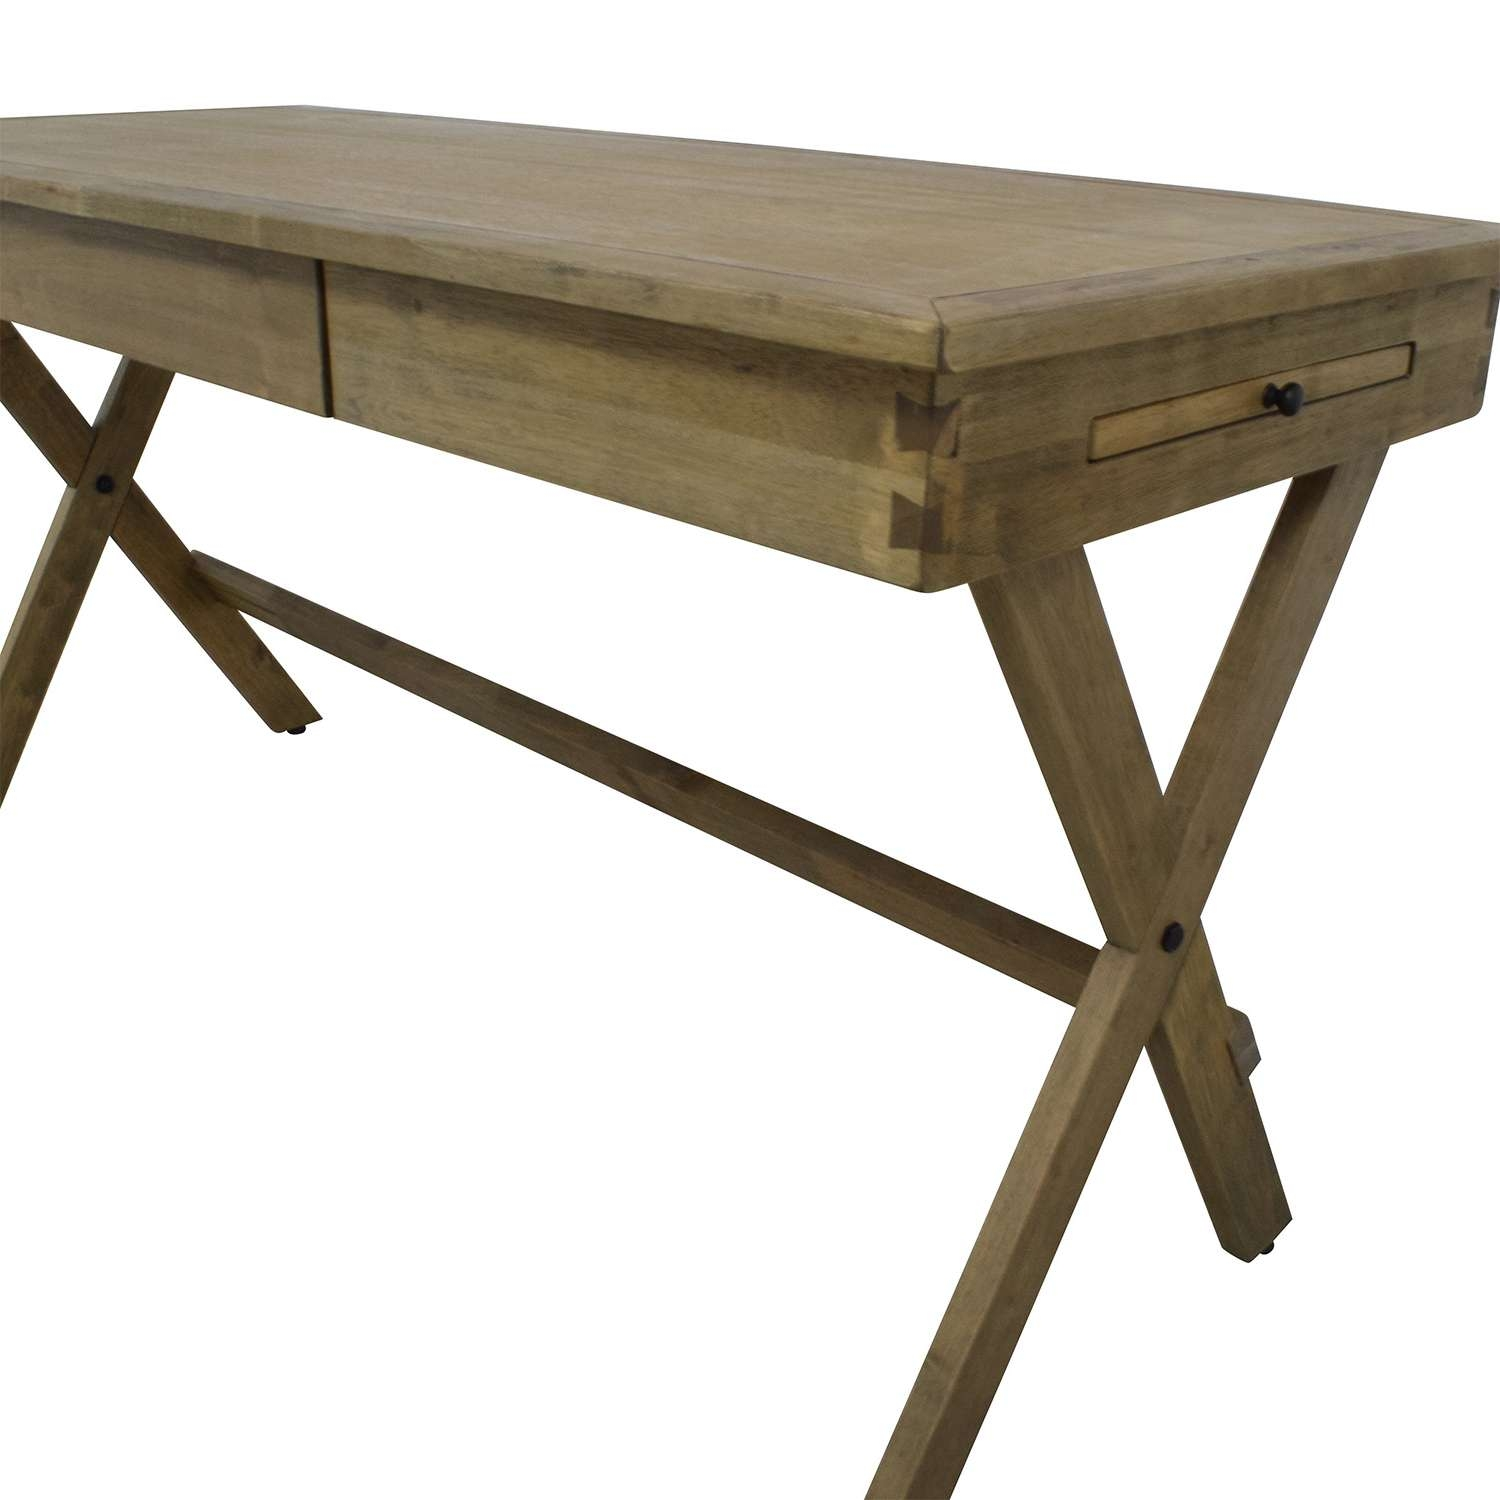 Coffee Table : Fabulous Coffee Table Cover Farmhouse Coffee Table Within Widely Used Campaign Coffee Tables (View 4 of 20)